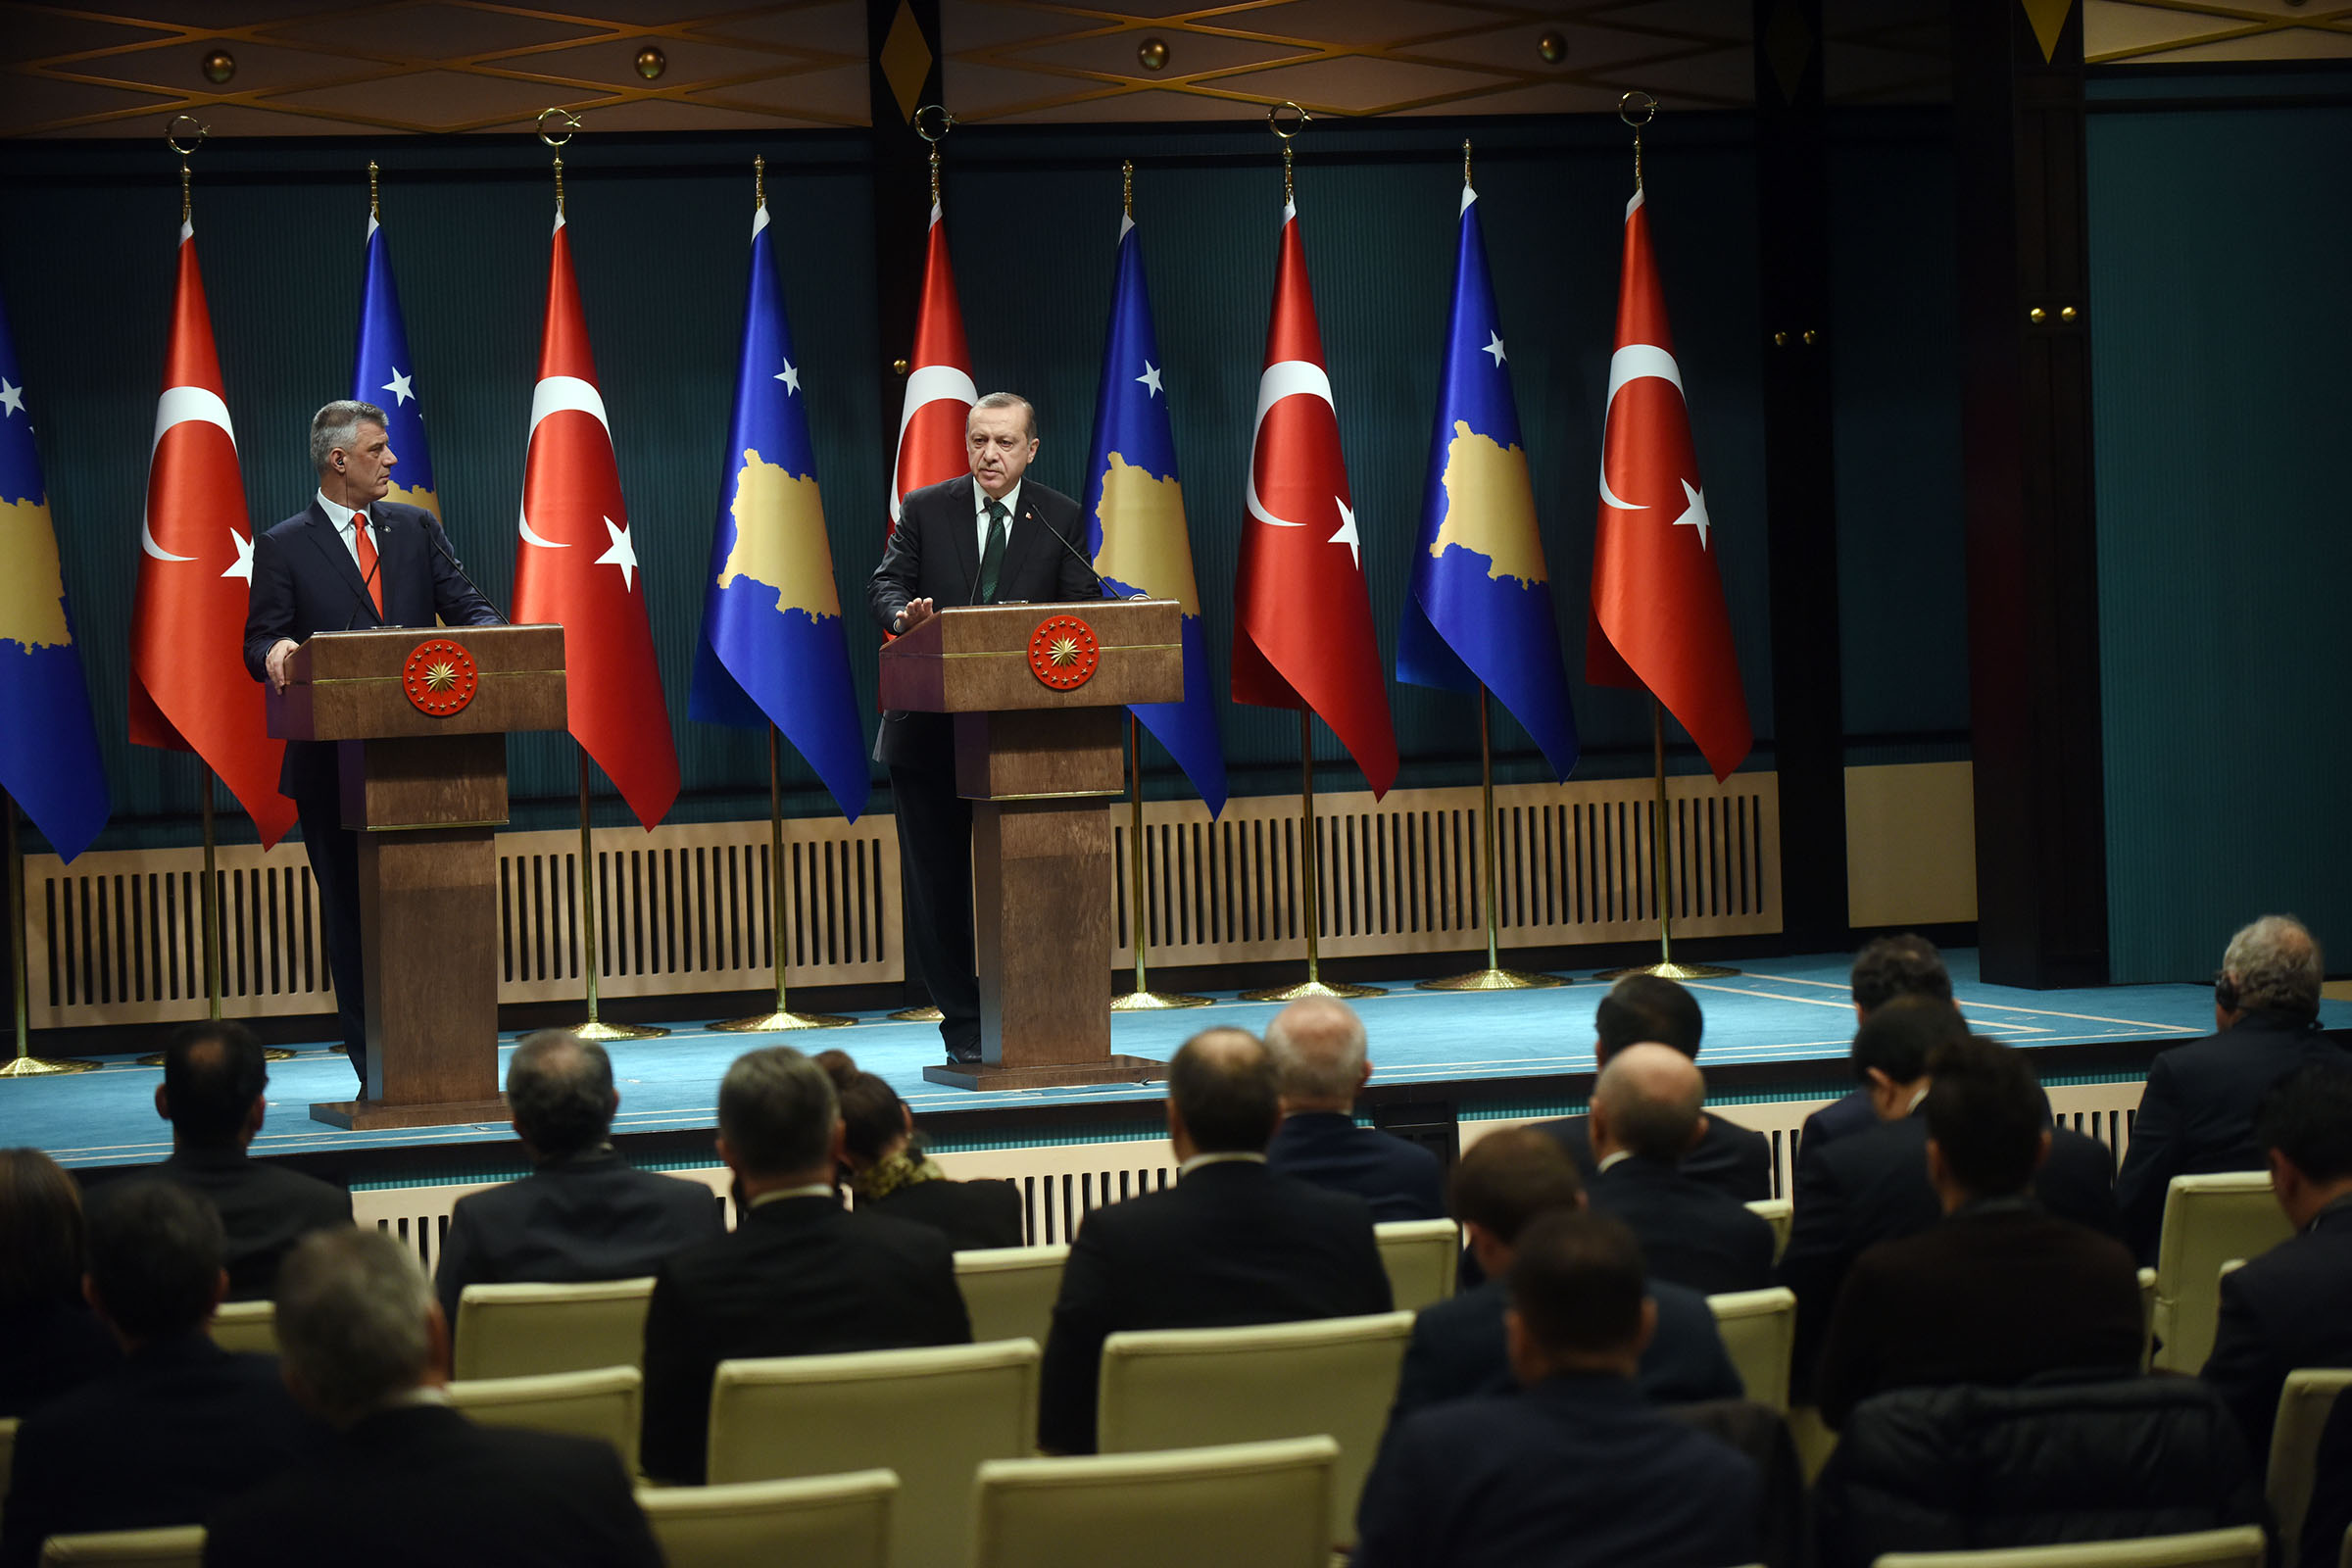 President Thaçi: Gratitude for Turkey's support in both good and bad times